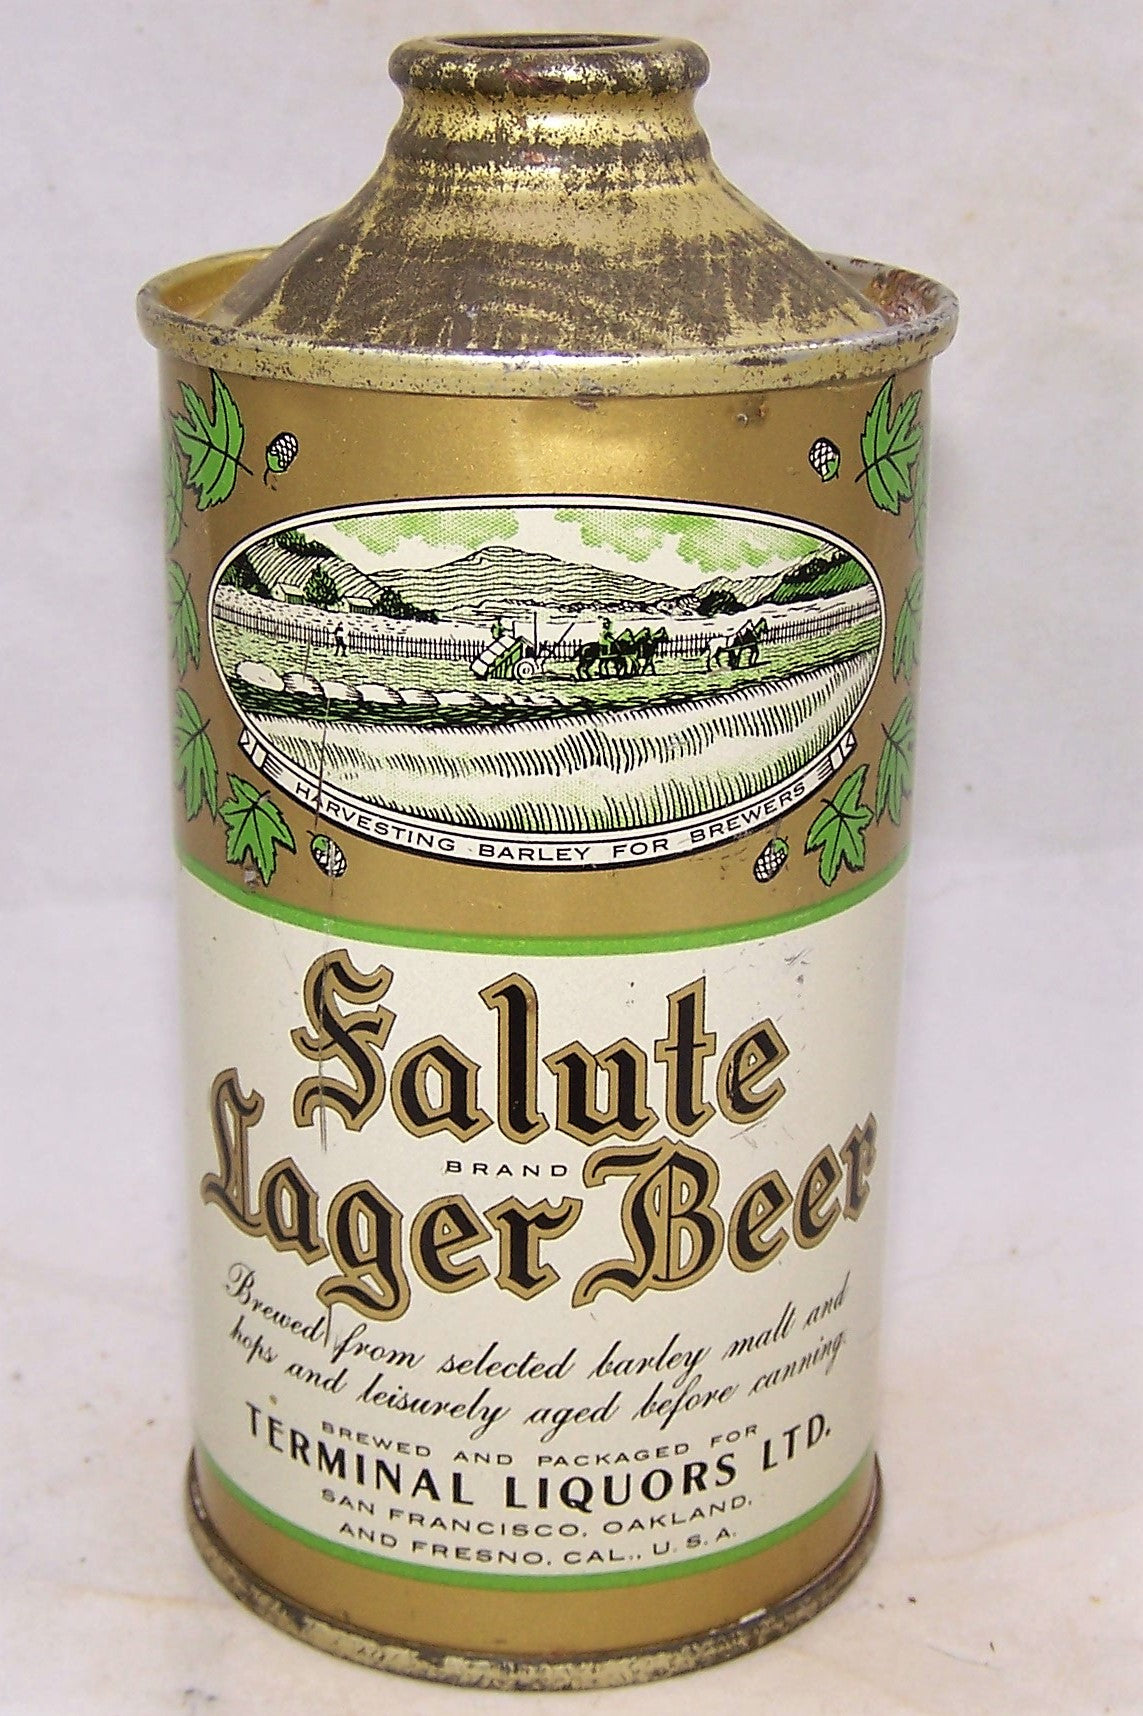 Salute Lager Beer Low Pro Cone Top, USBC 182-31, Grade 1 to 1/1+